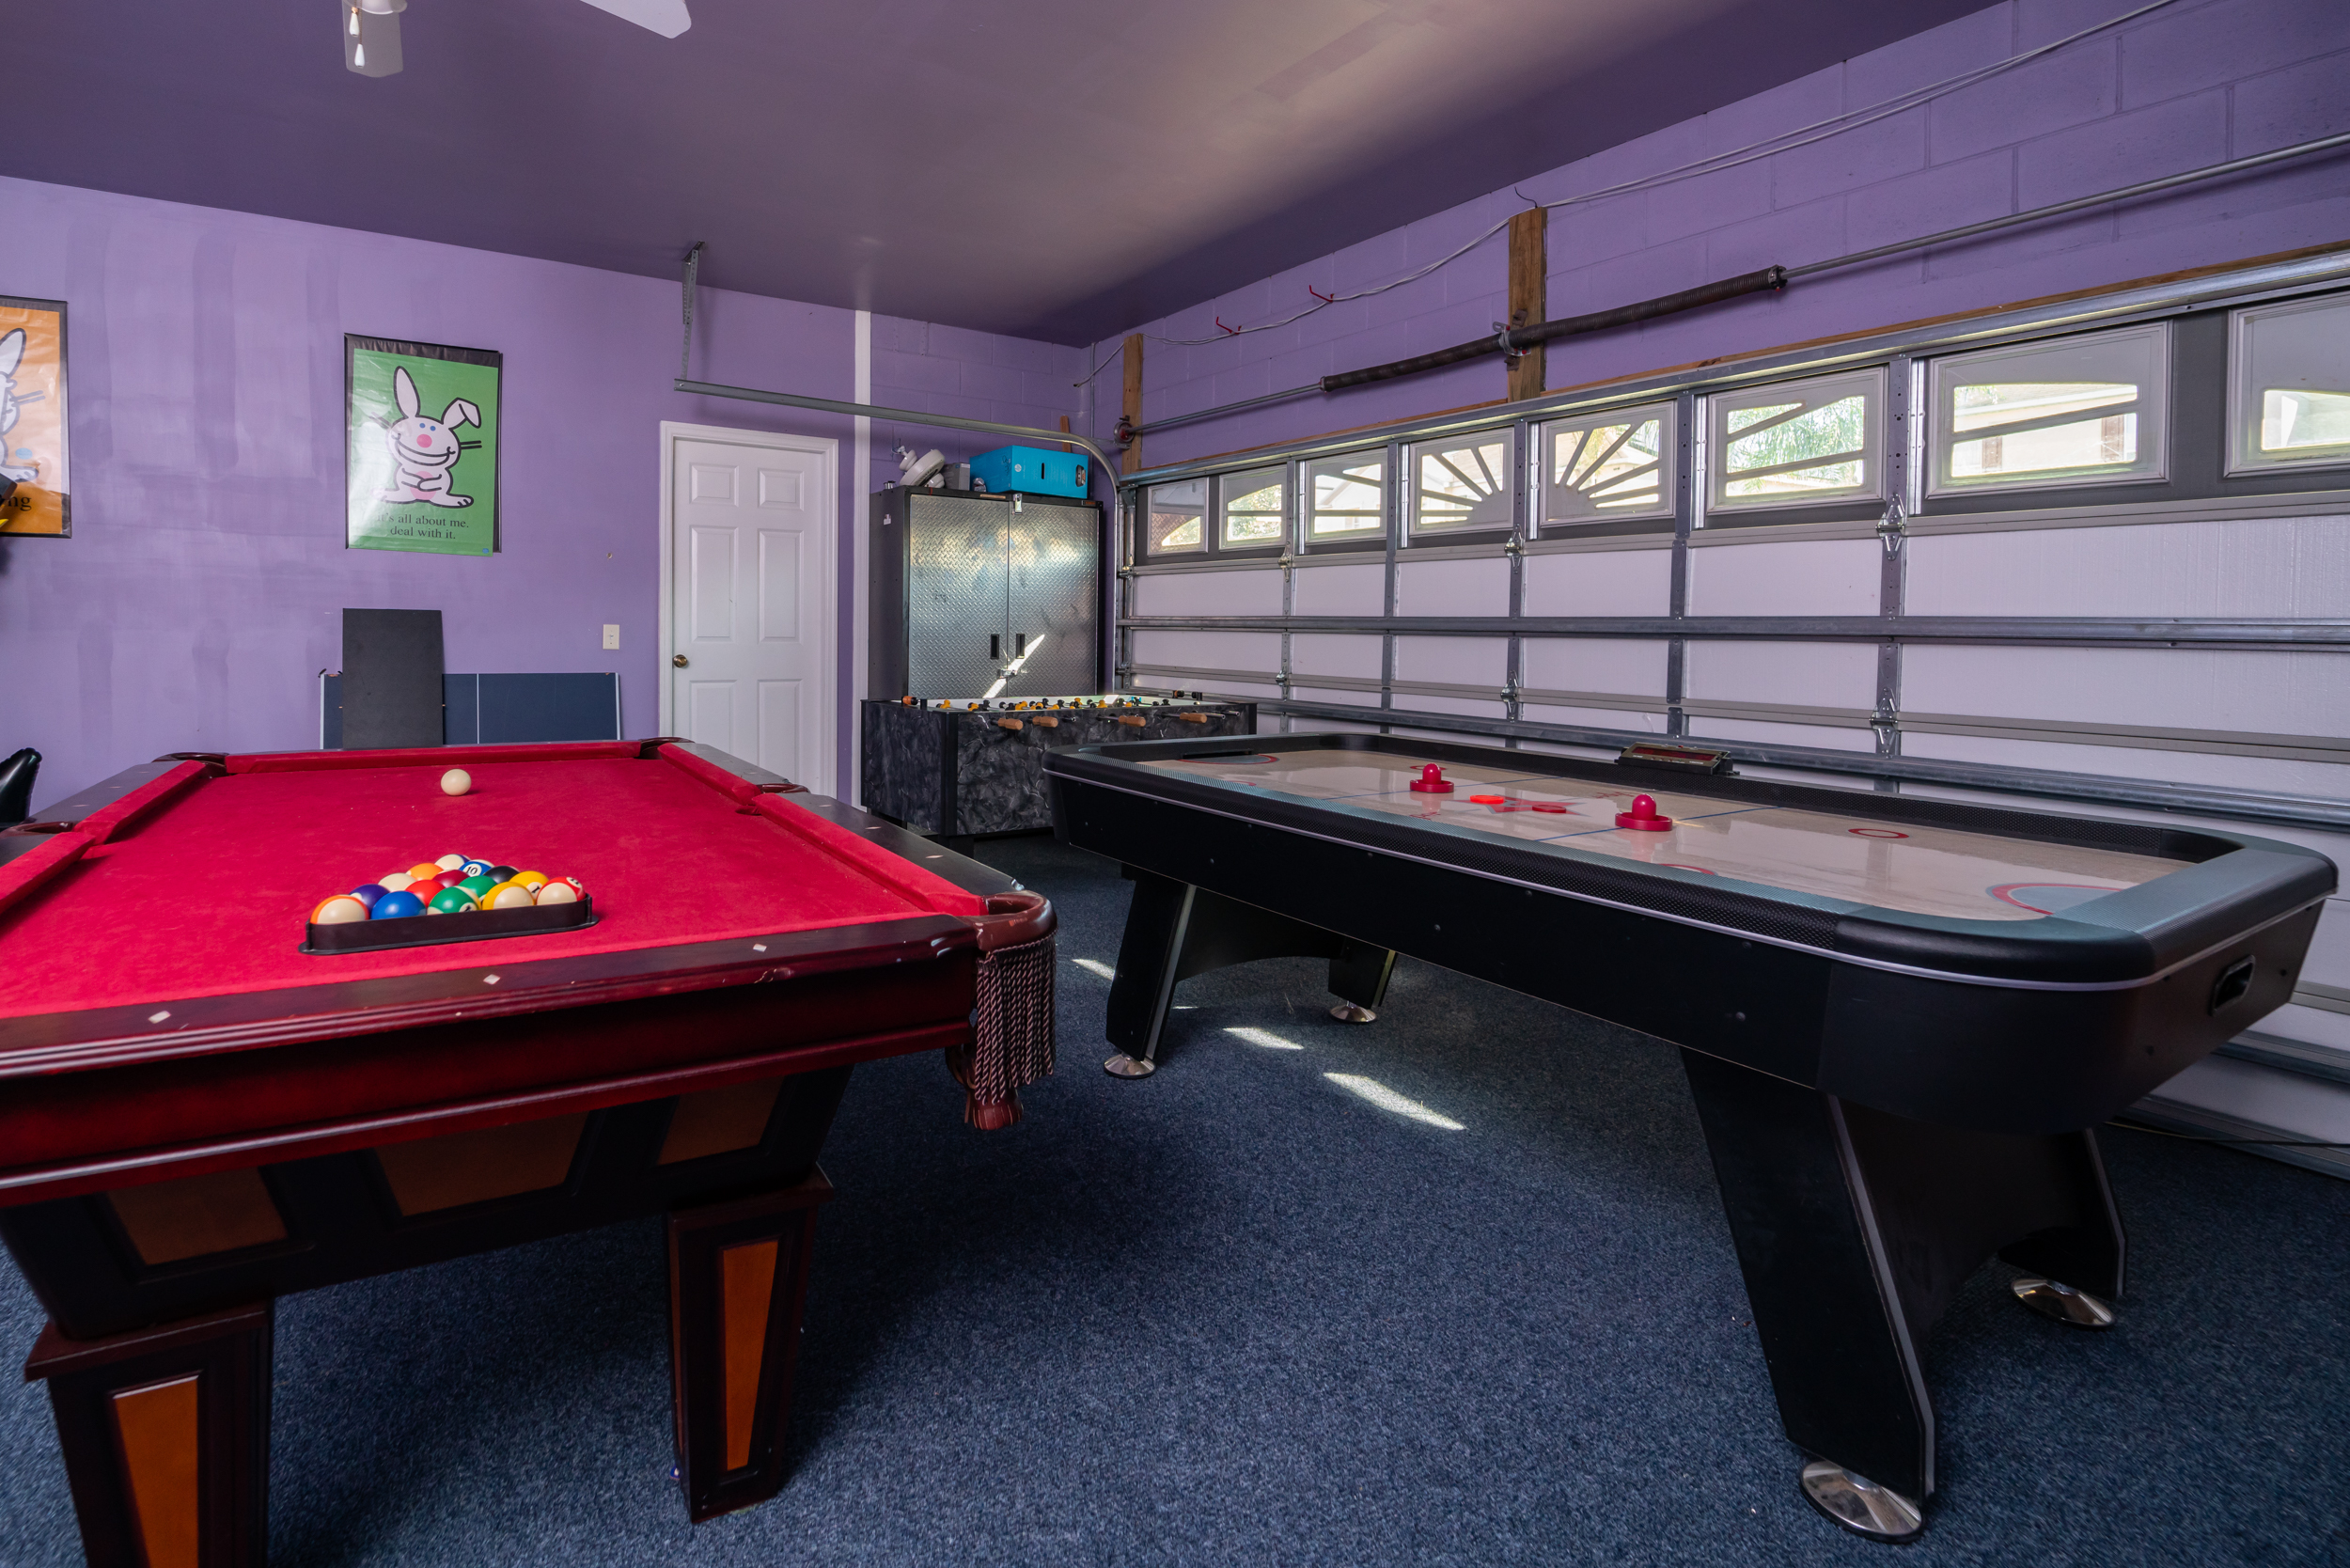 Garage converted to games room with pool table, air hockey and foosball table